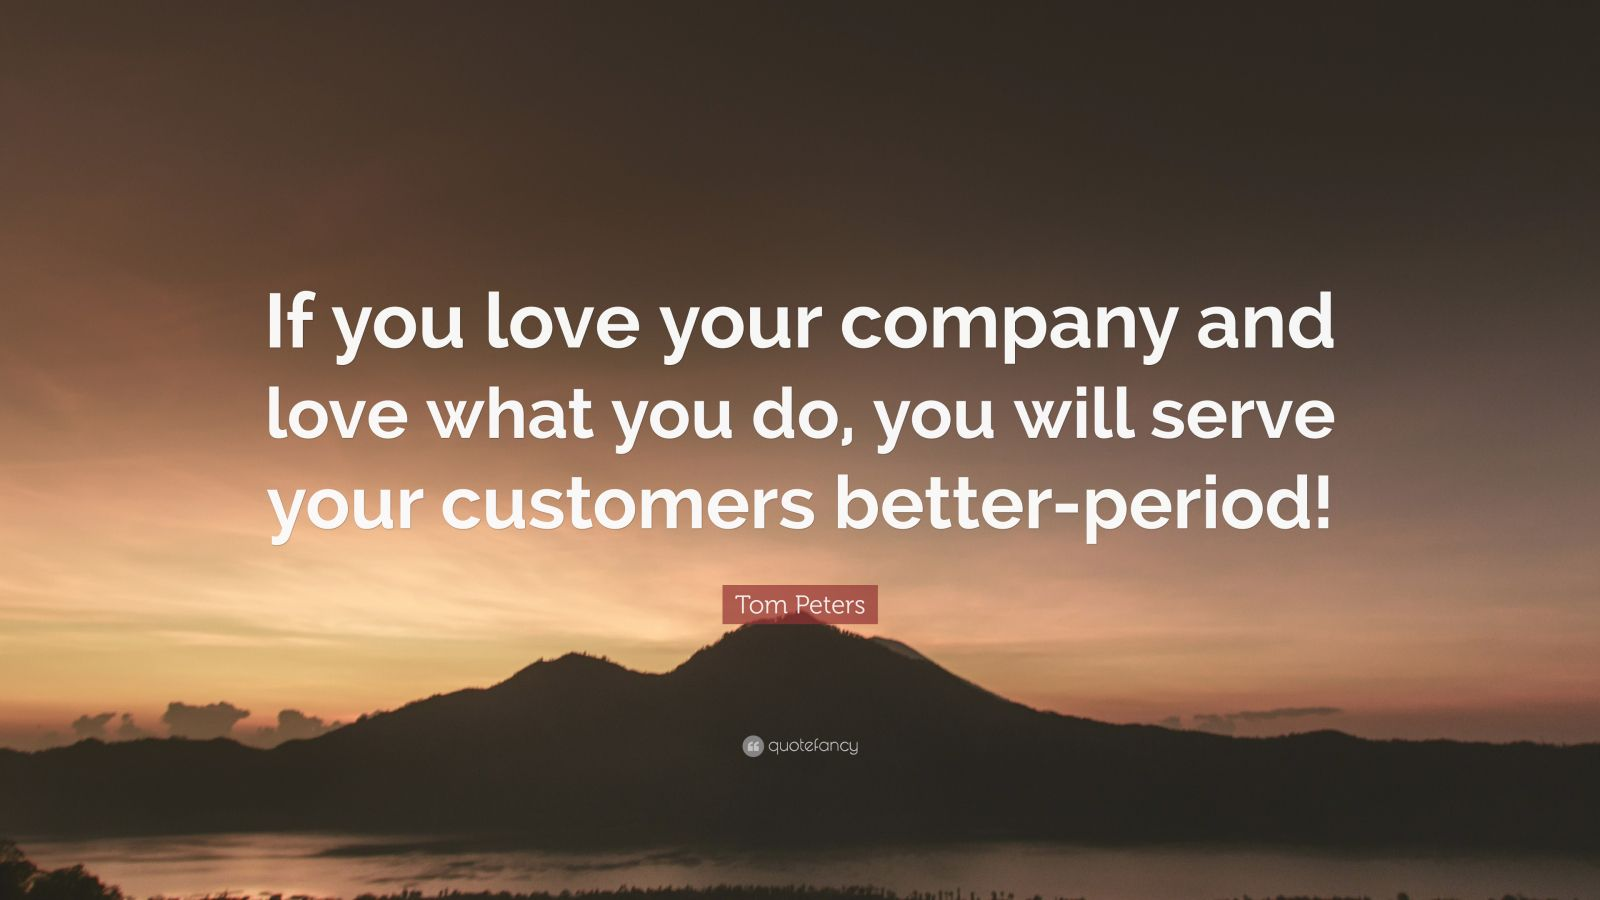 """Tom Peters Quote: """"If you love your company and love what you do, you will serve your customers better-period!"""""""